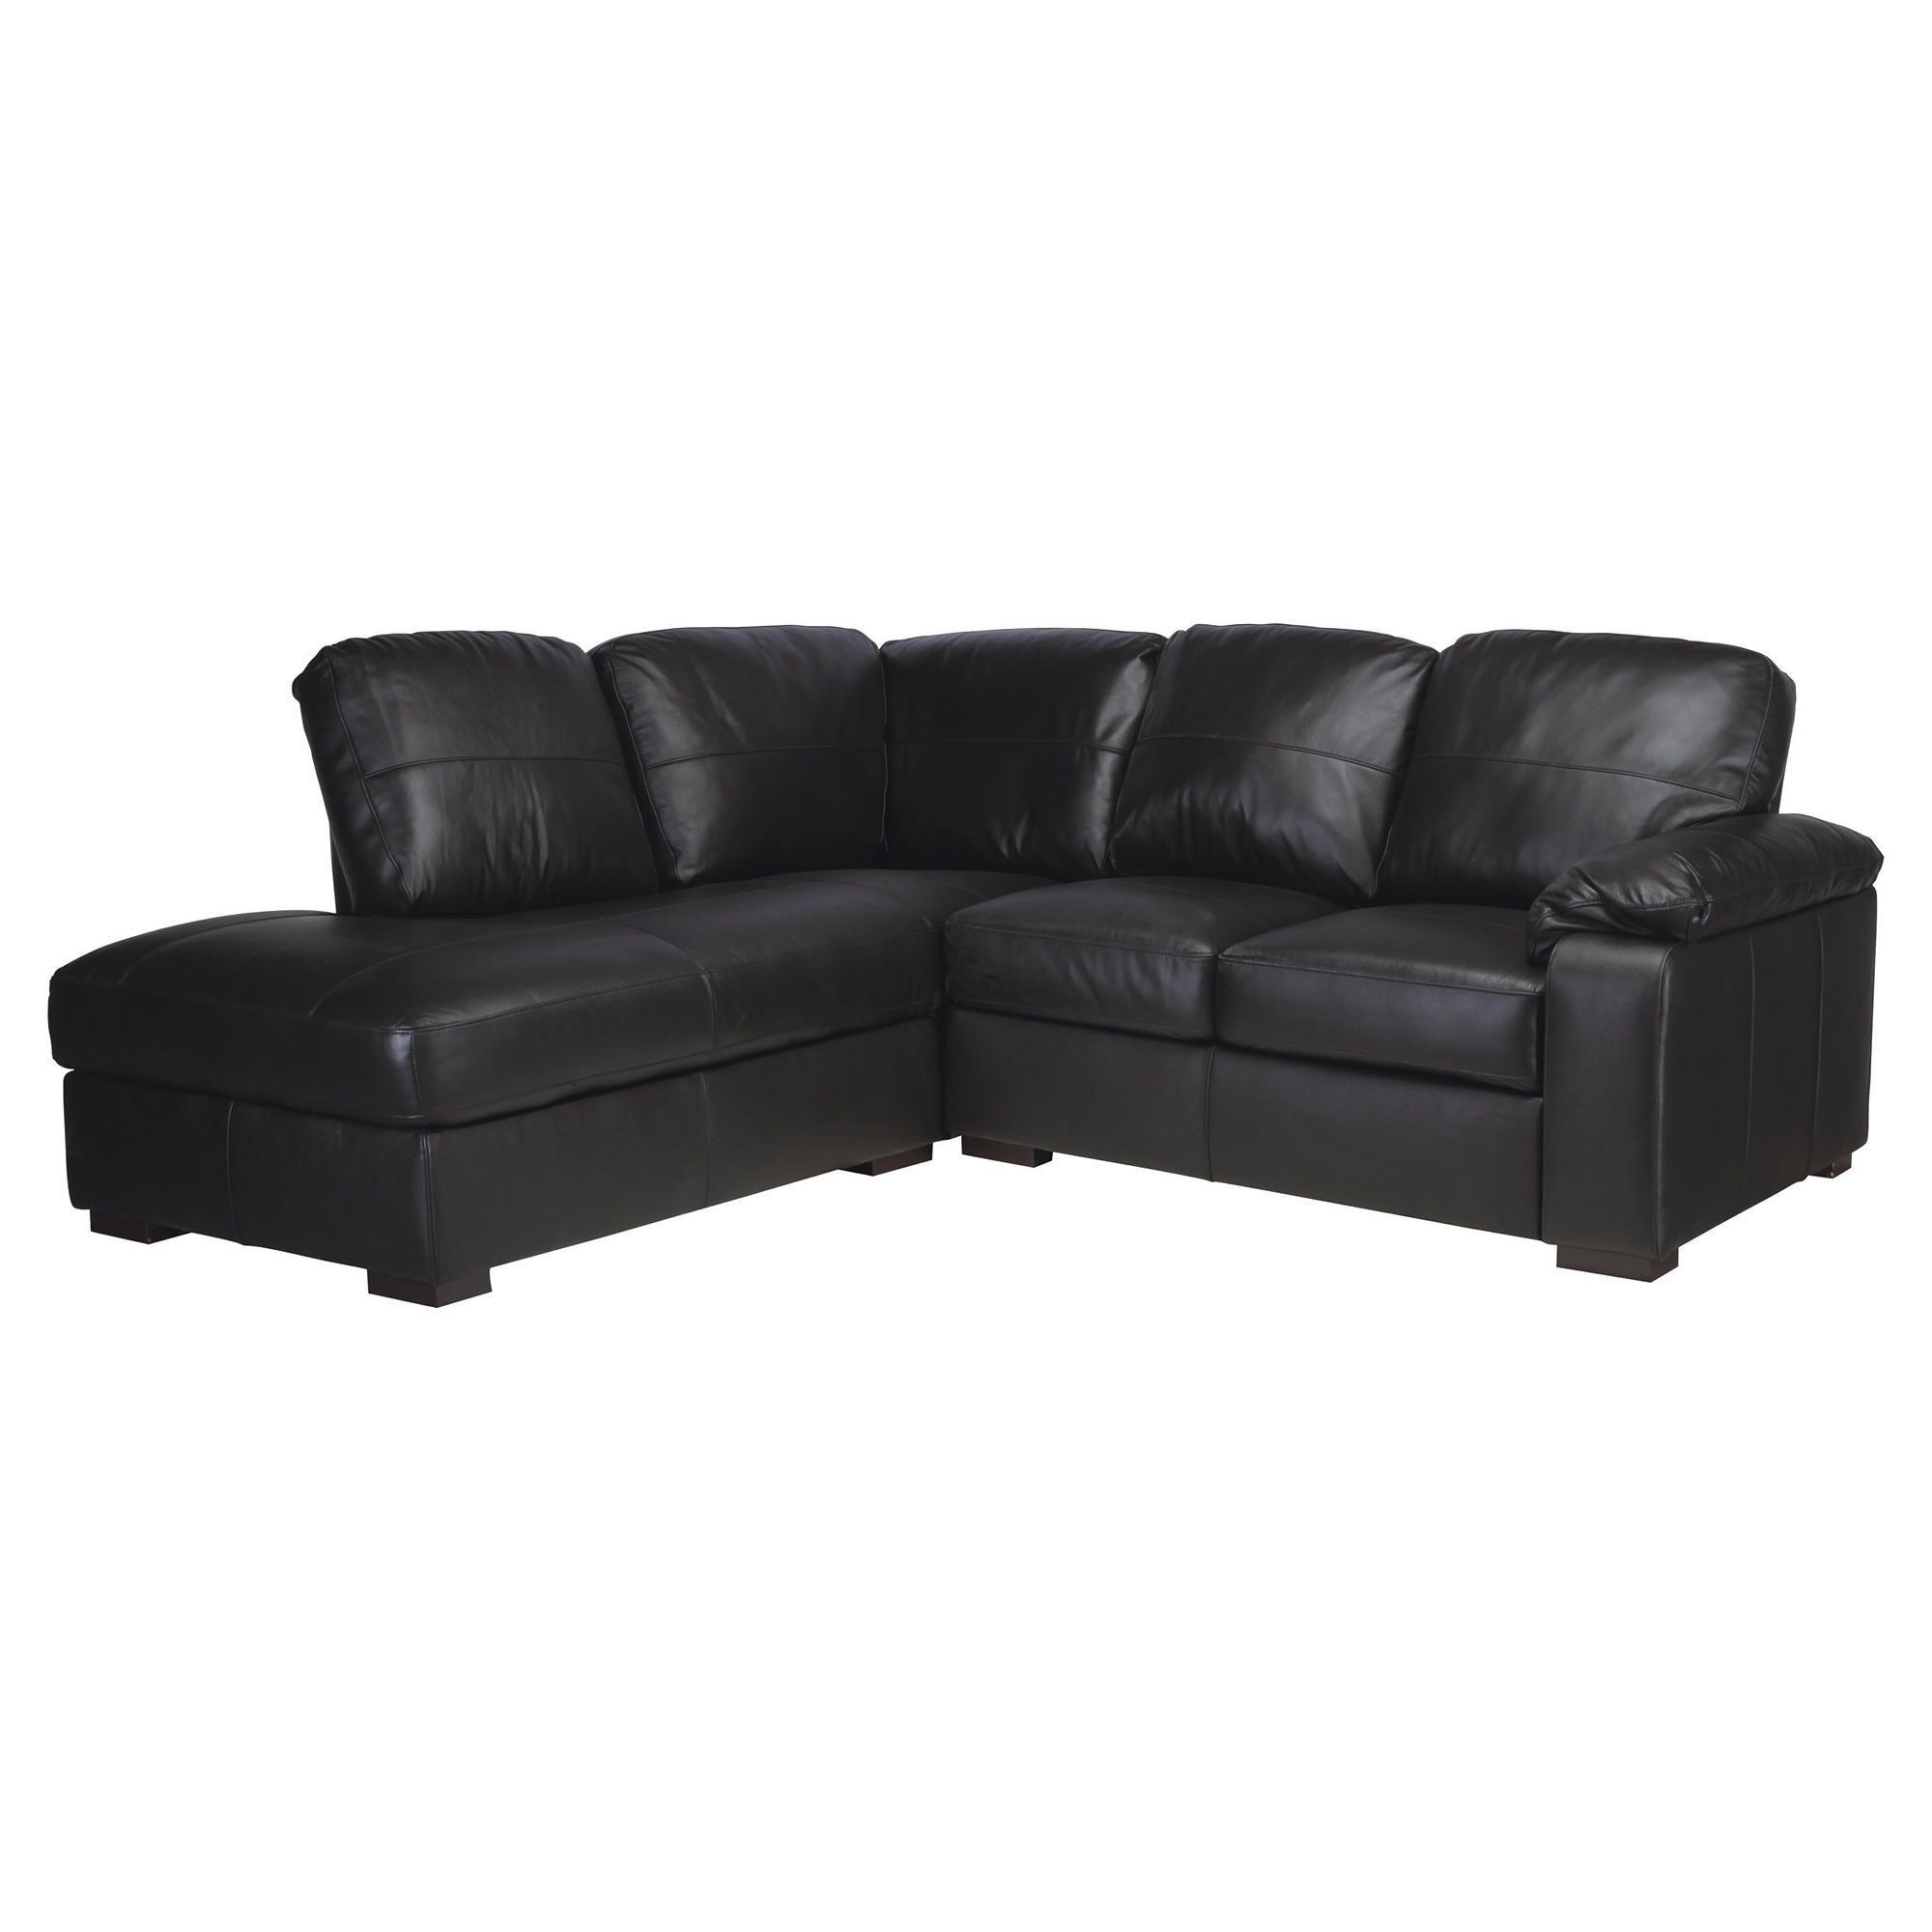 Ashmore Leather Corner Sofa, Black Left Hand Facing at Tesco Direct